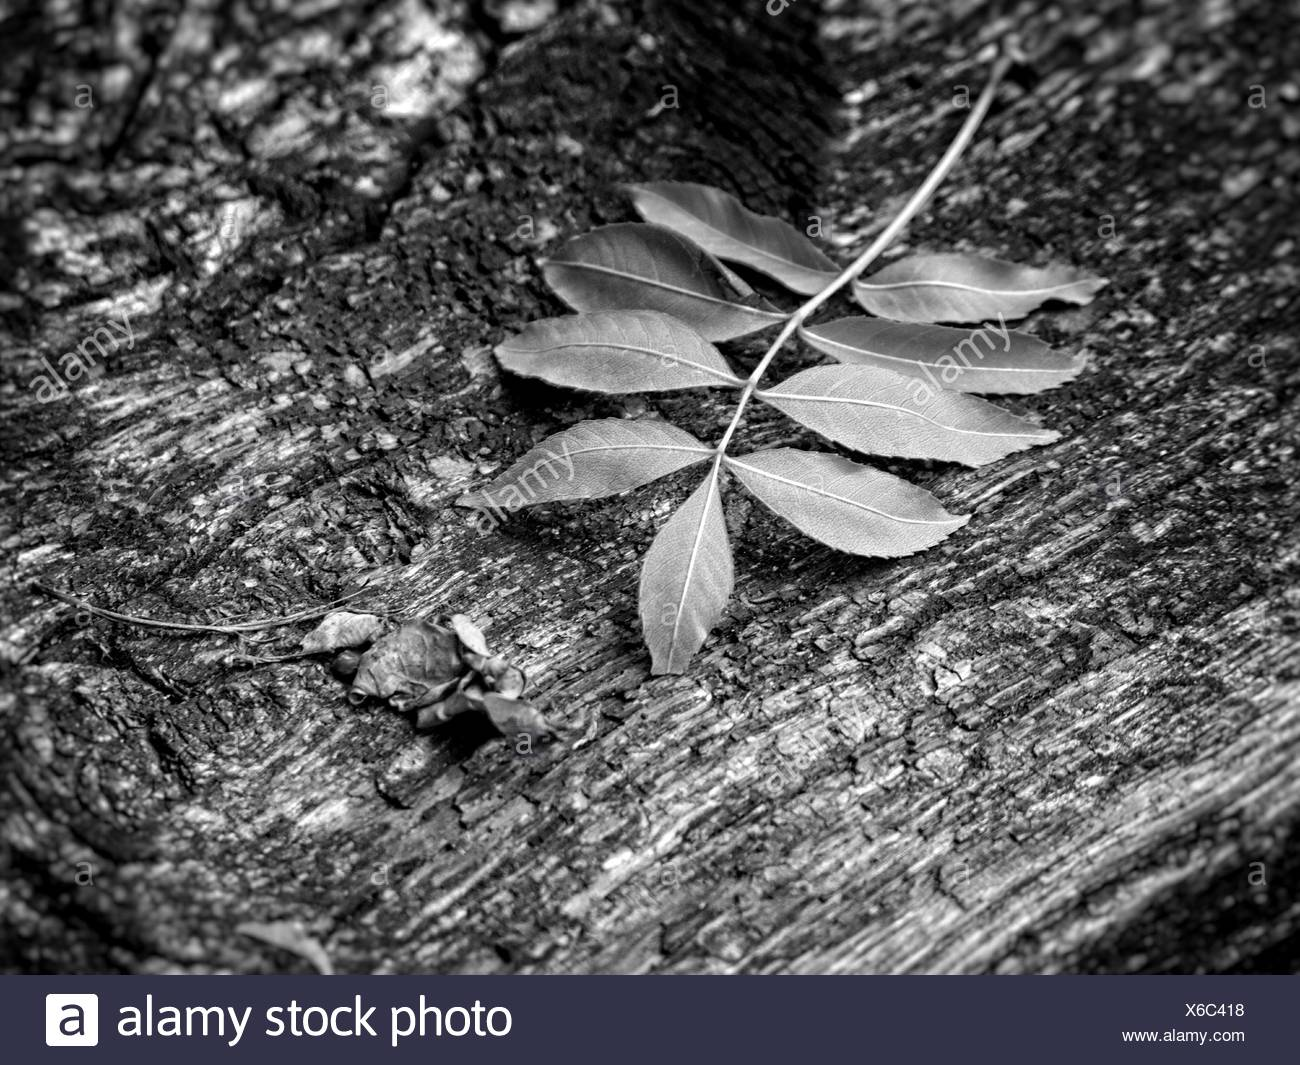 Close-Up Of Leaves On Rocky Surface - Stock Image